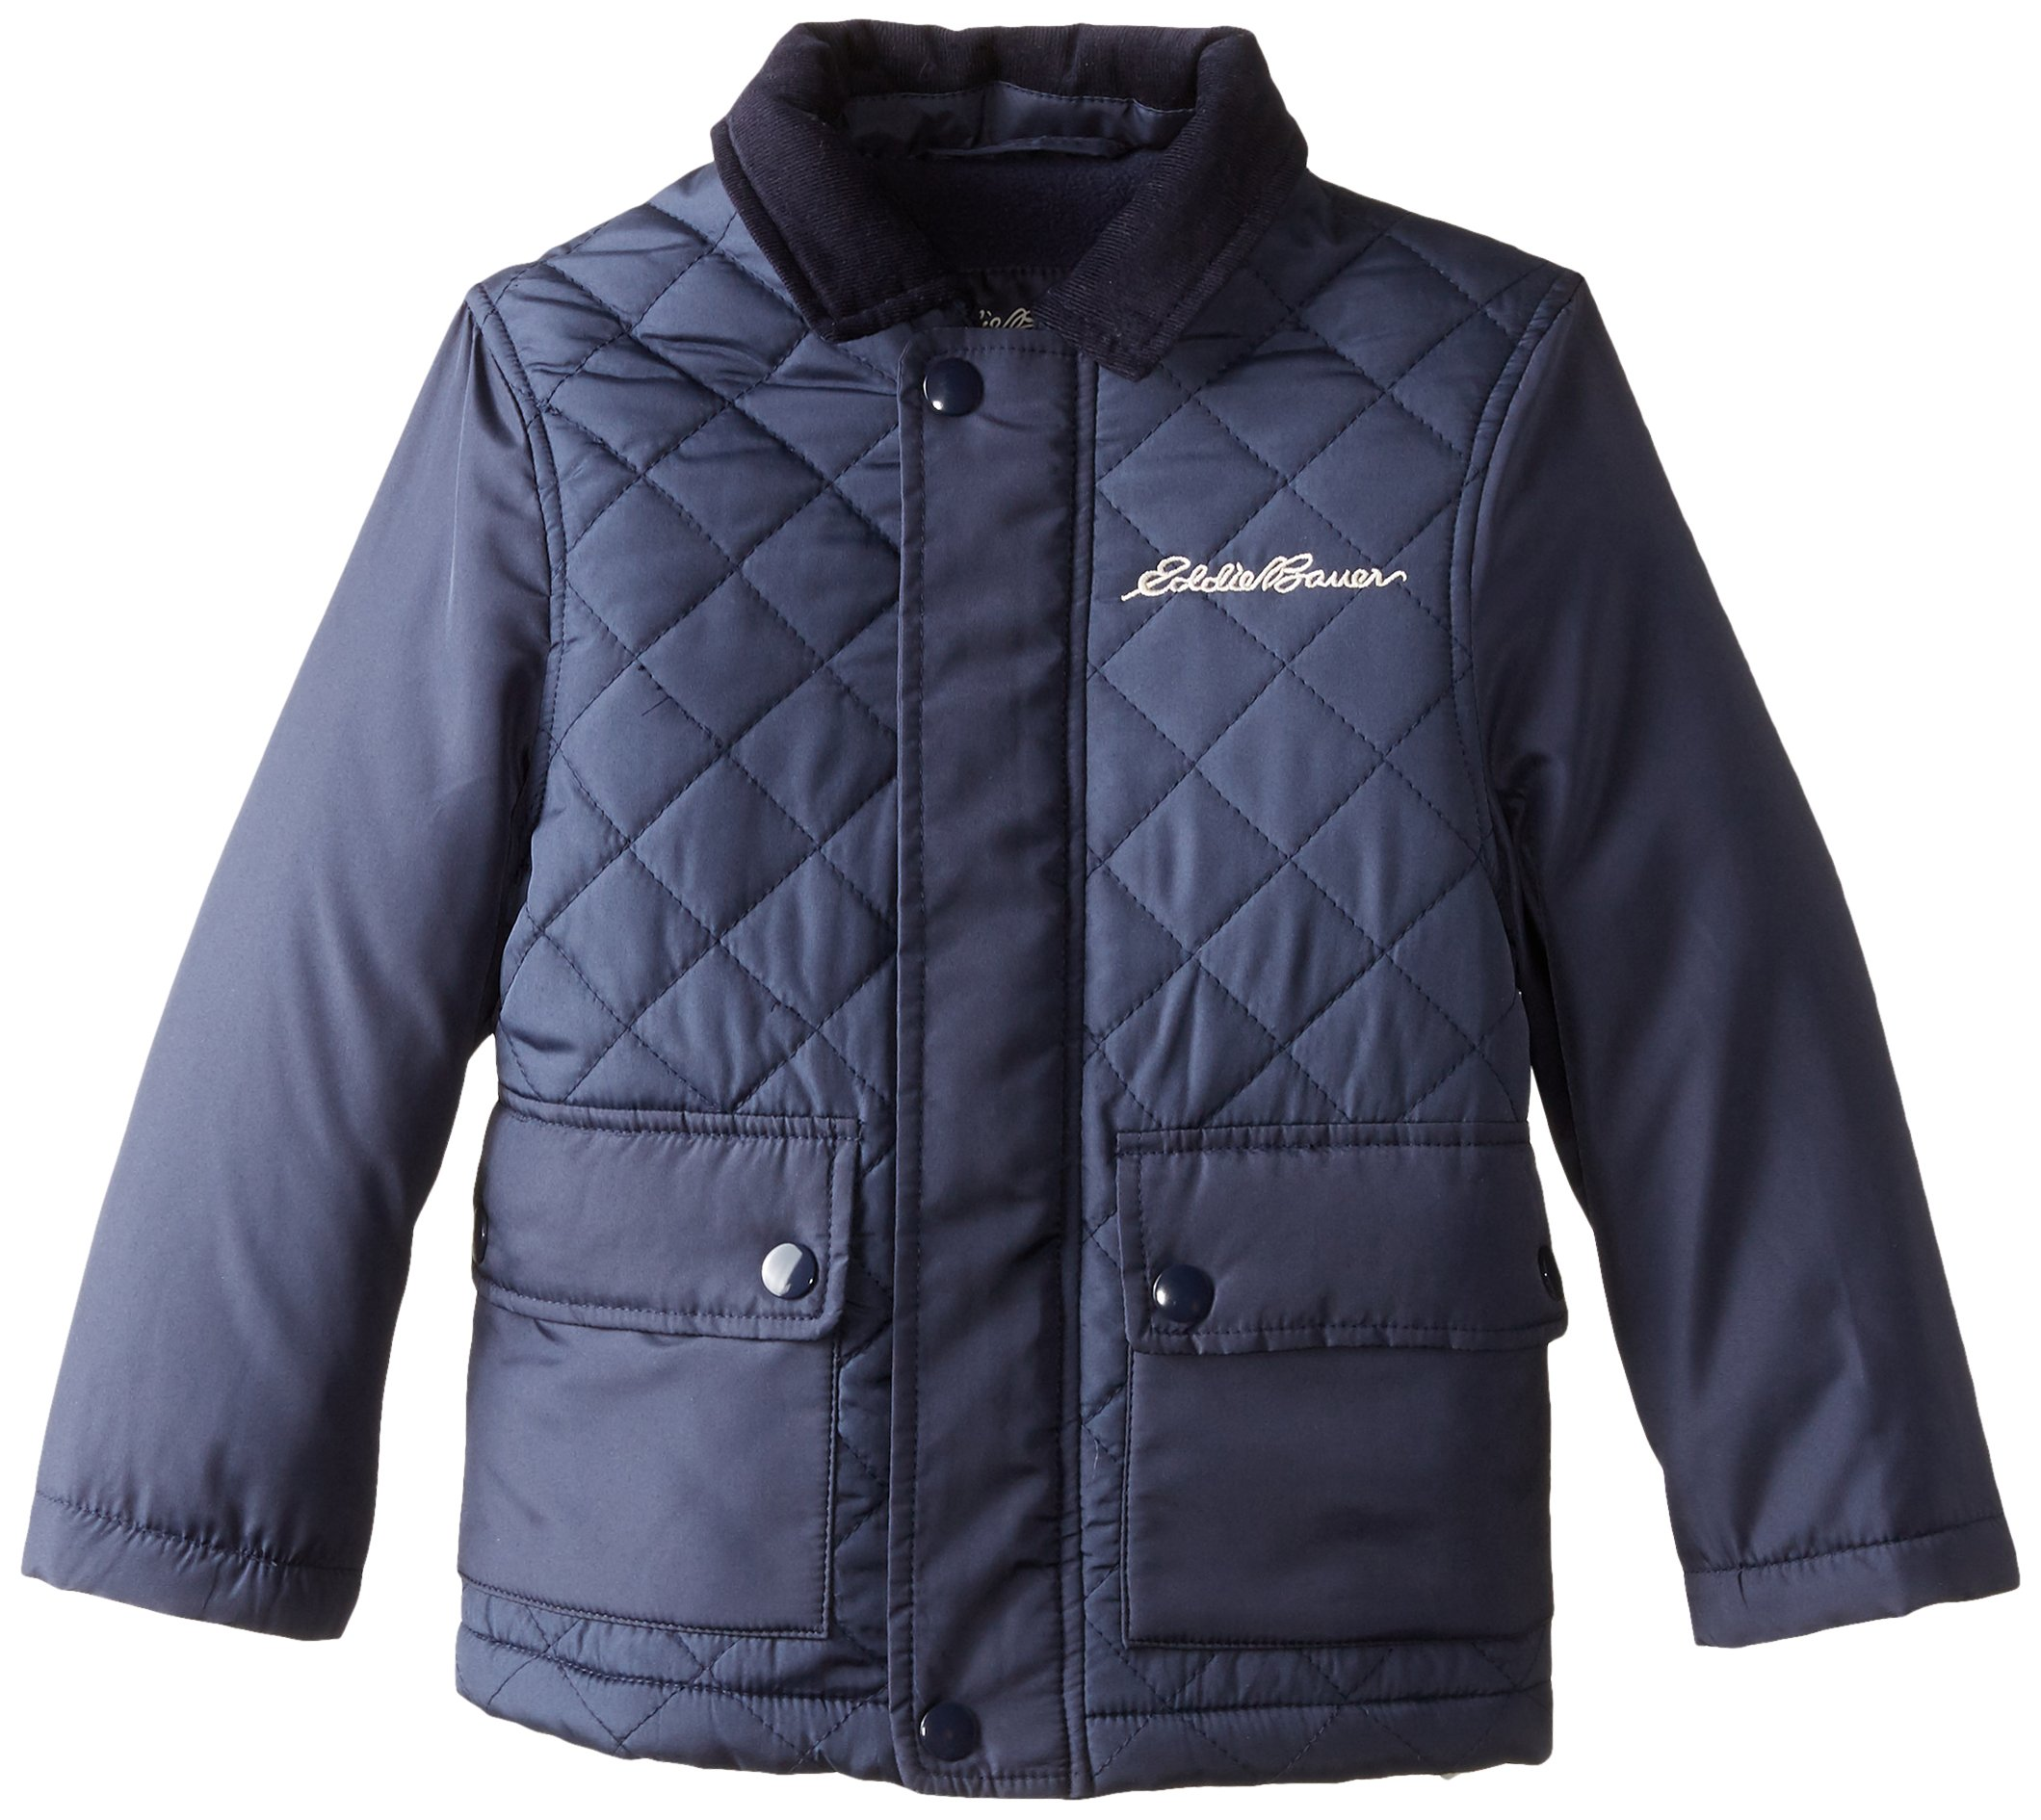 Eddie Bauer Boys' Jacket (More Styles Available), Quilted Navy, 7